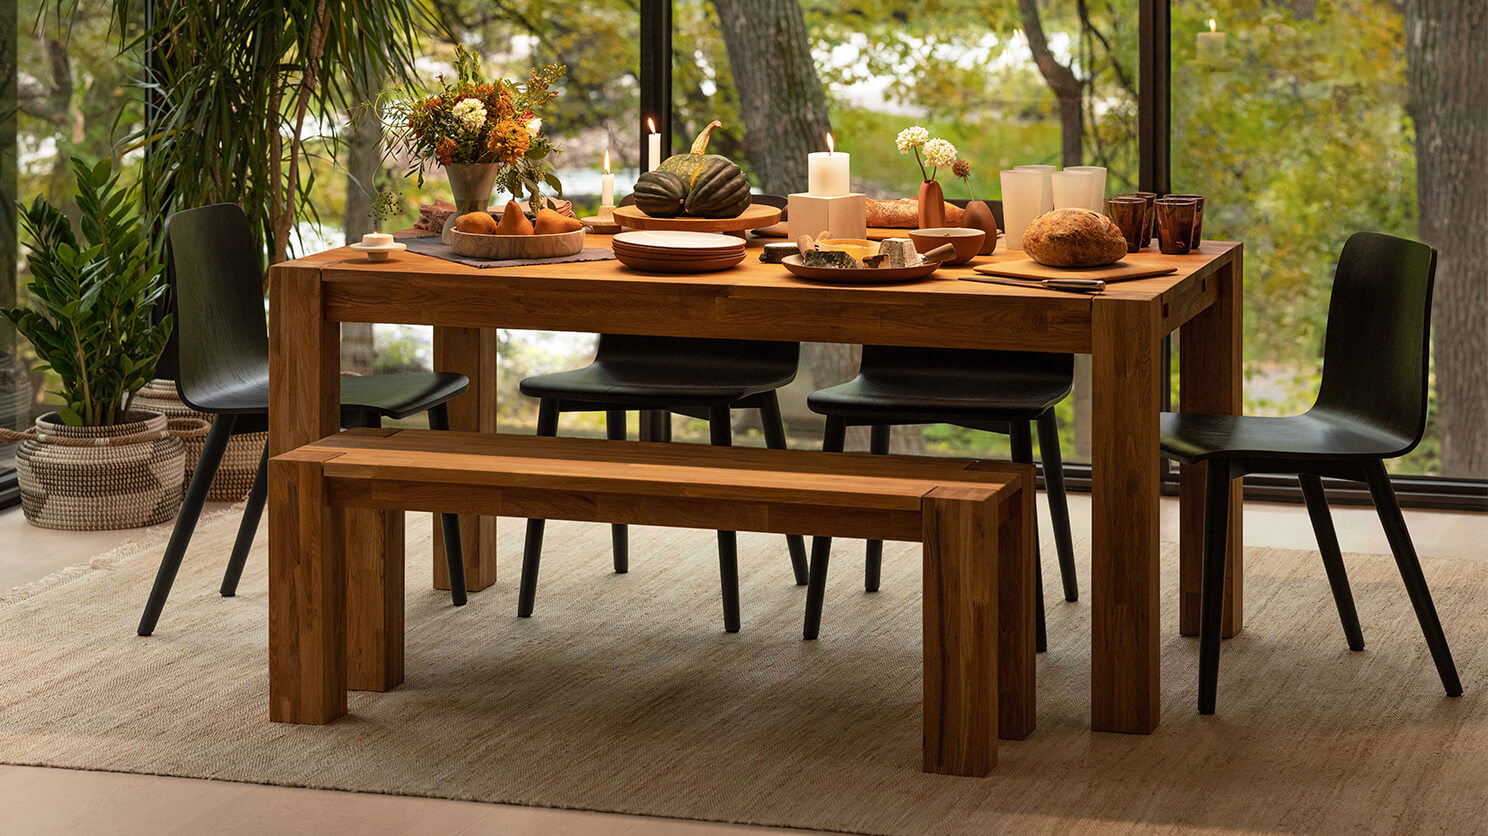 Rustic Dining Table Bench Seat From Eq3, Eq3 Dining Room Tables